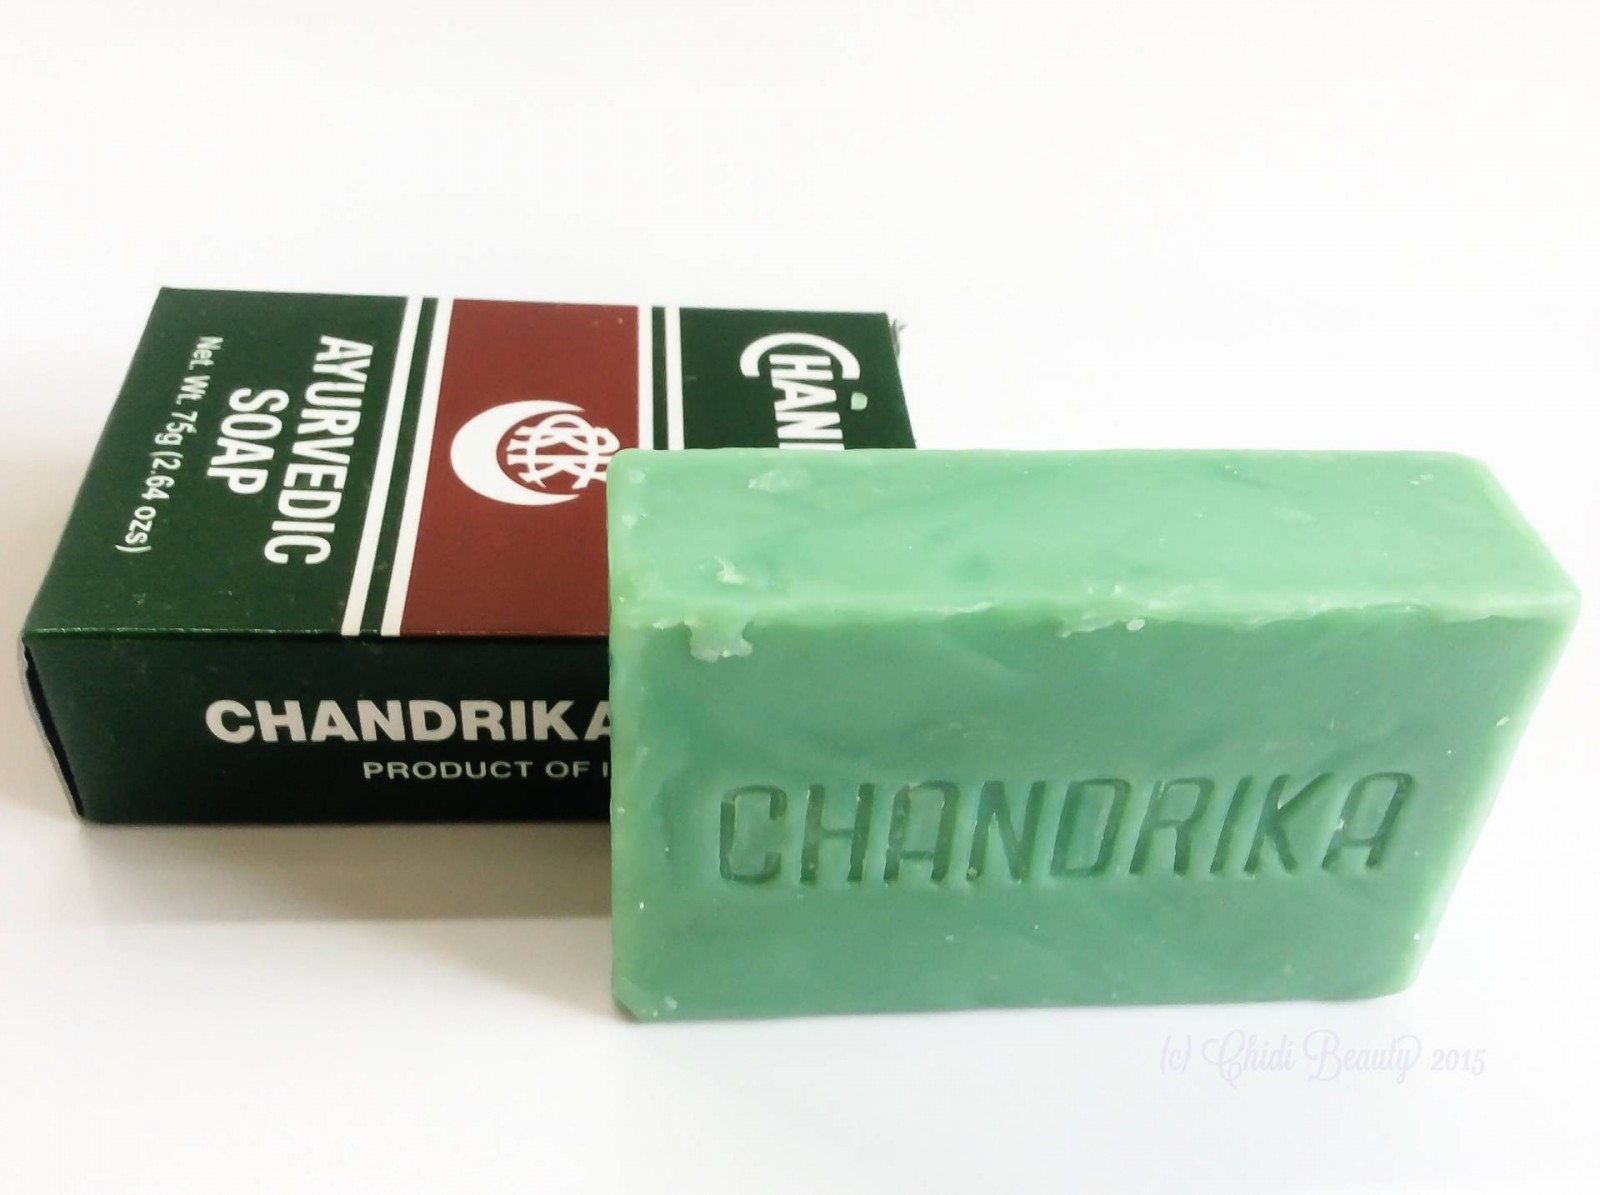 Chandrika Ayurvedic Soap (75 g/2.64 oz)